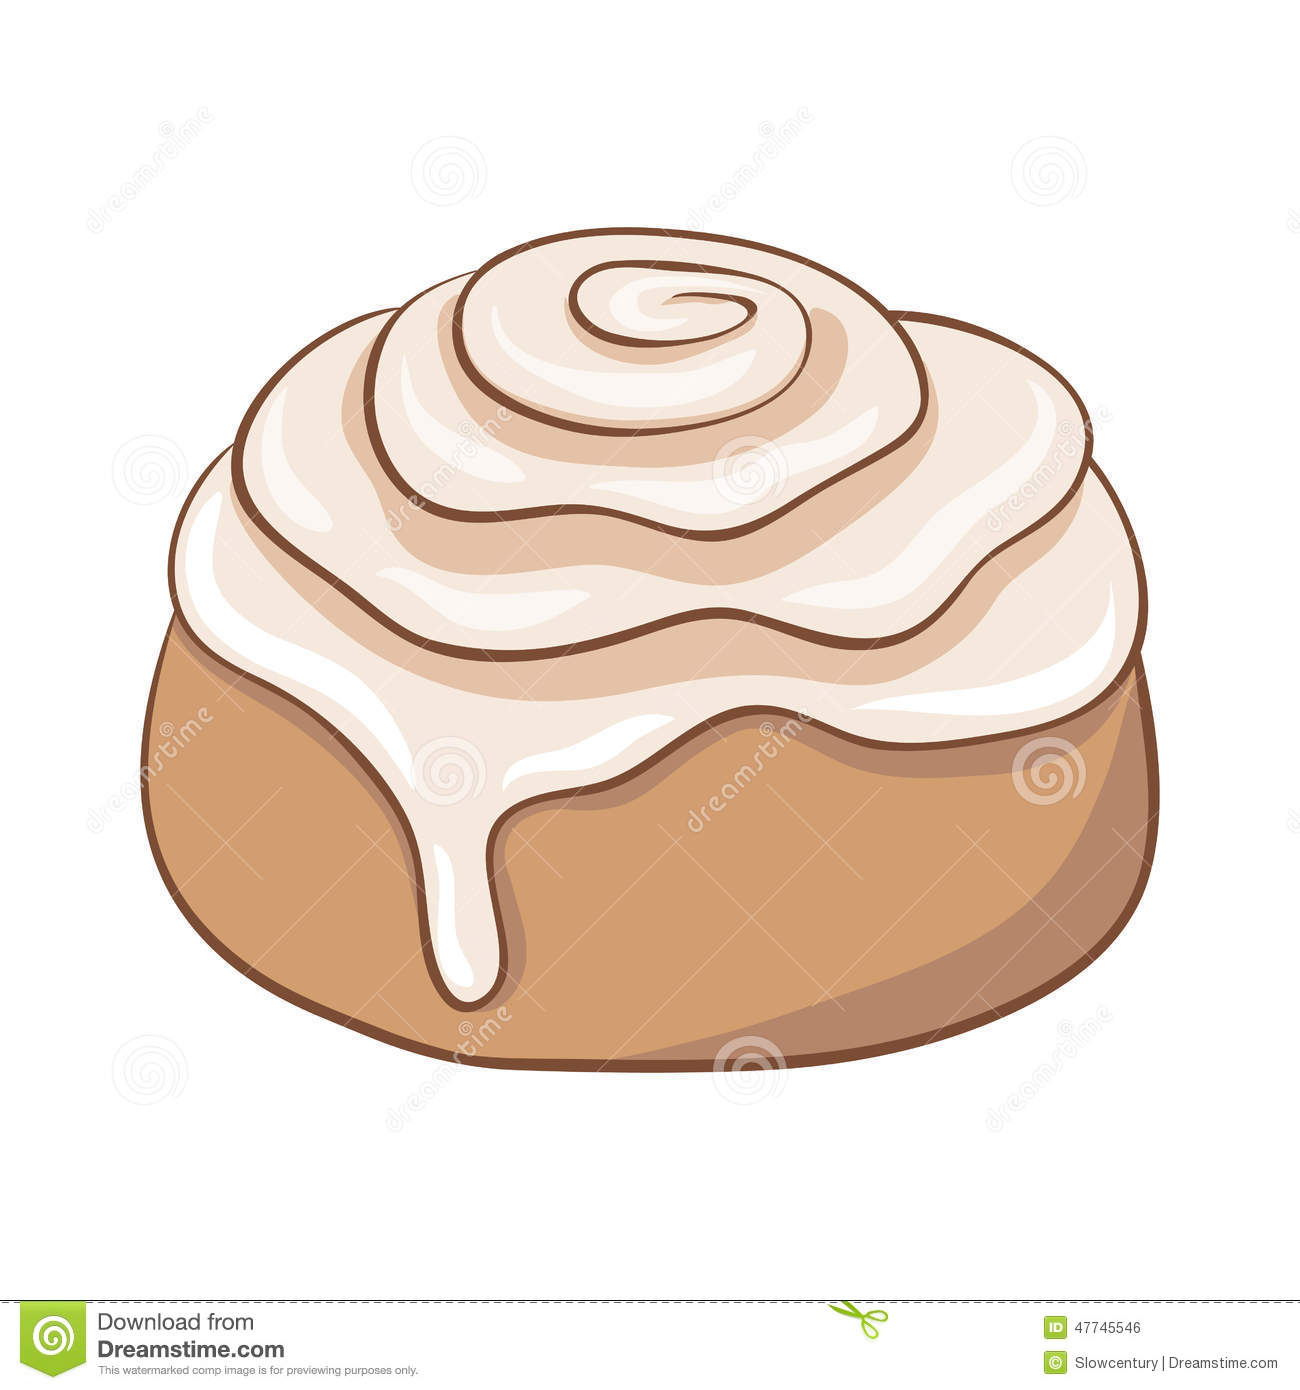 Freshly Baked Cinnamon Roll With Sweet F-Freshly Baked Cinnamon Roll With Sweet Frosting Stock Vector Image-15